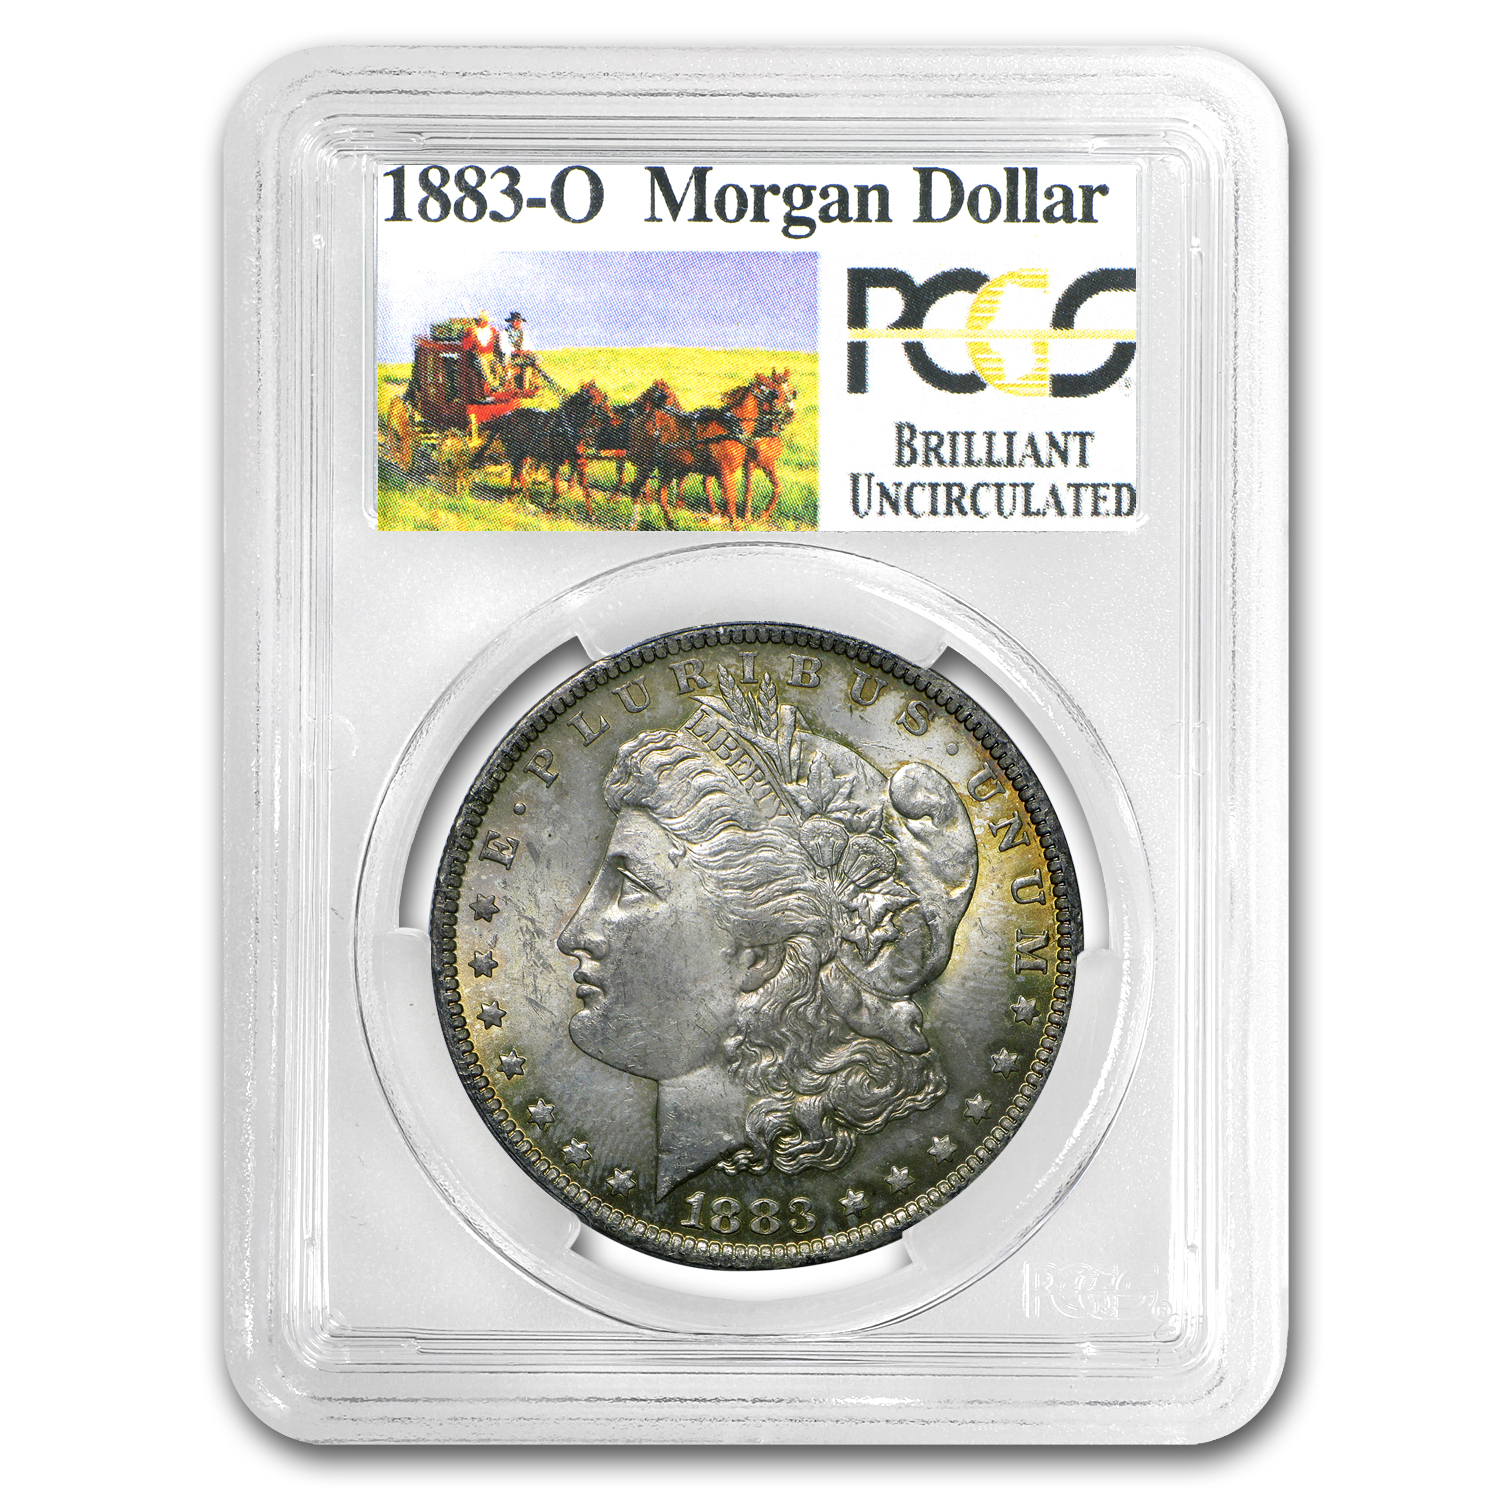 1878-1904 Stage Coach Morgan Dollar BU PCGS (Beautifully Toned)